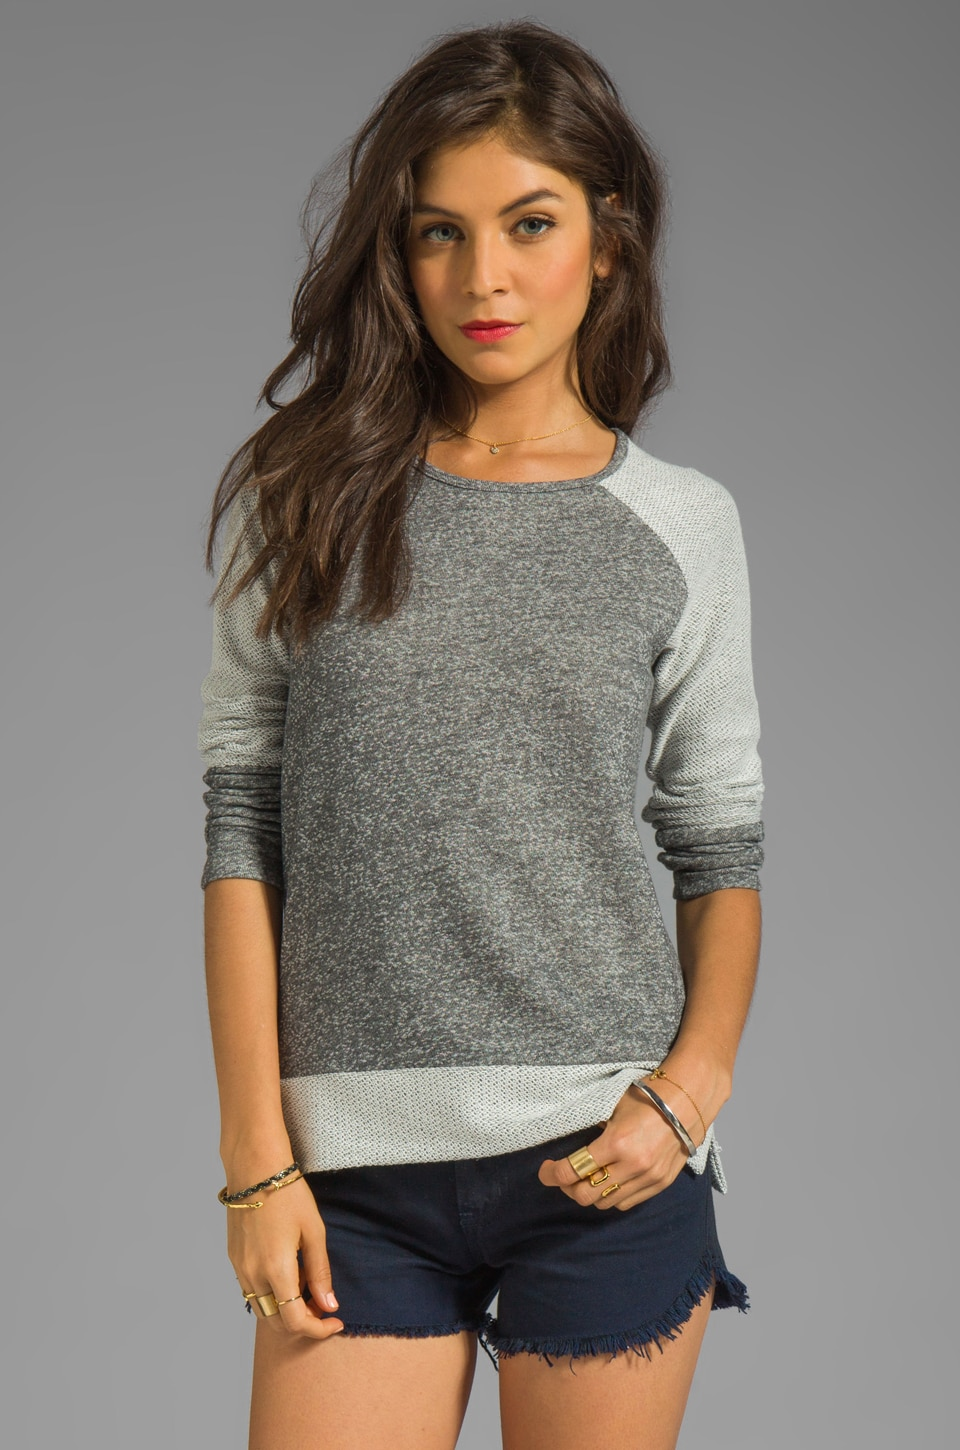 Whetherly Zuma French Terry Sweatshirt in Charcoal